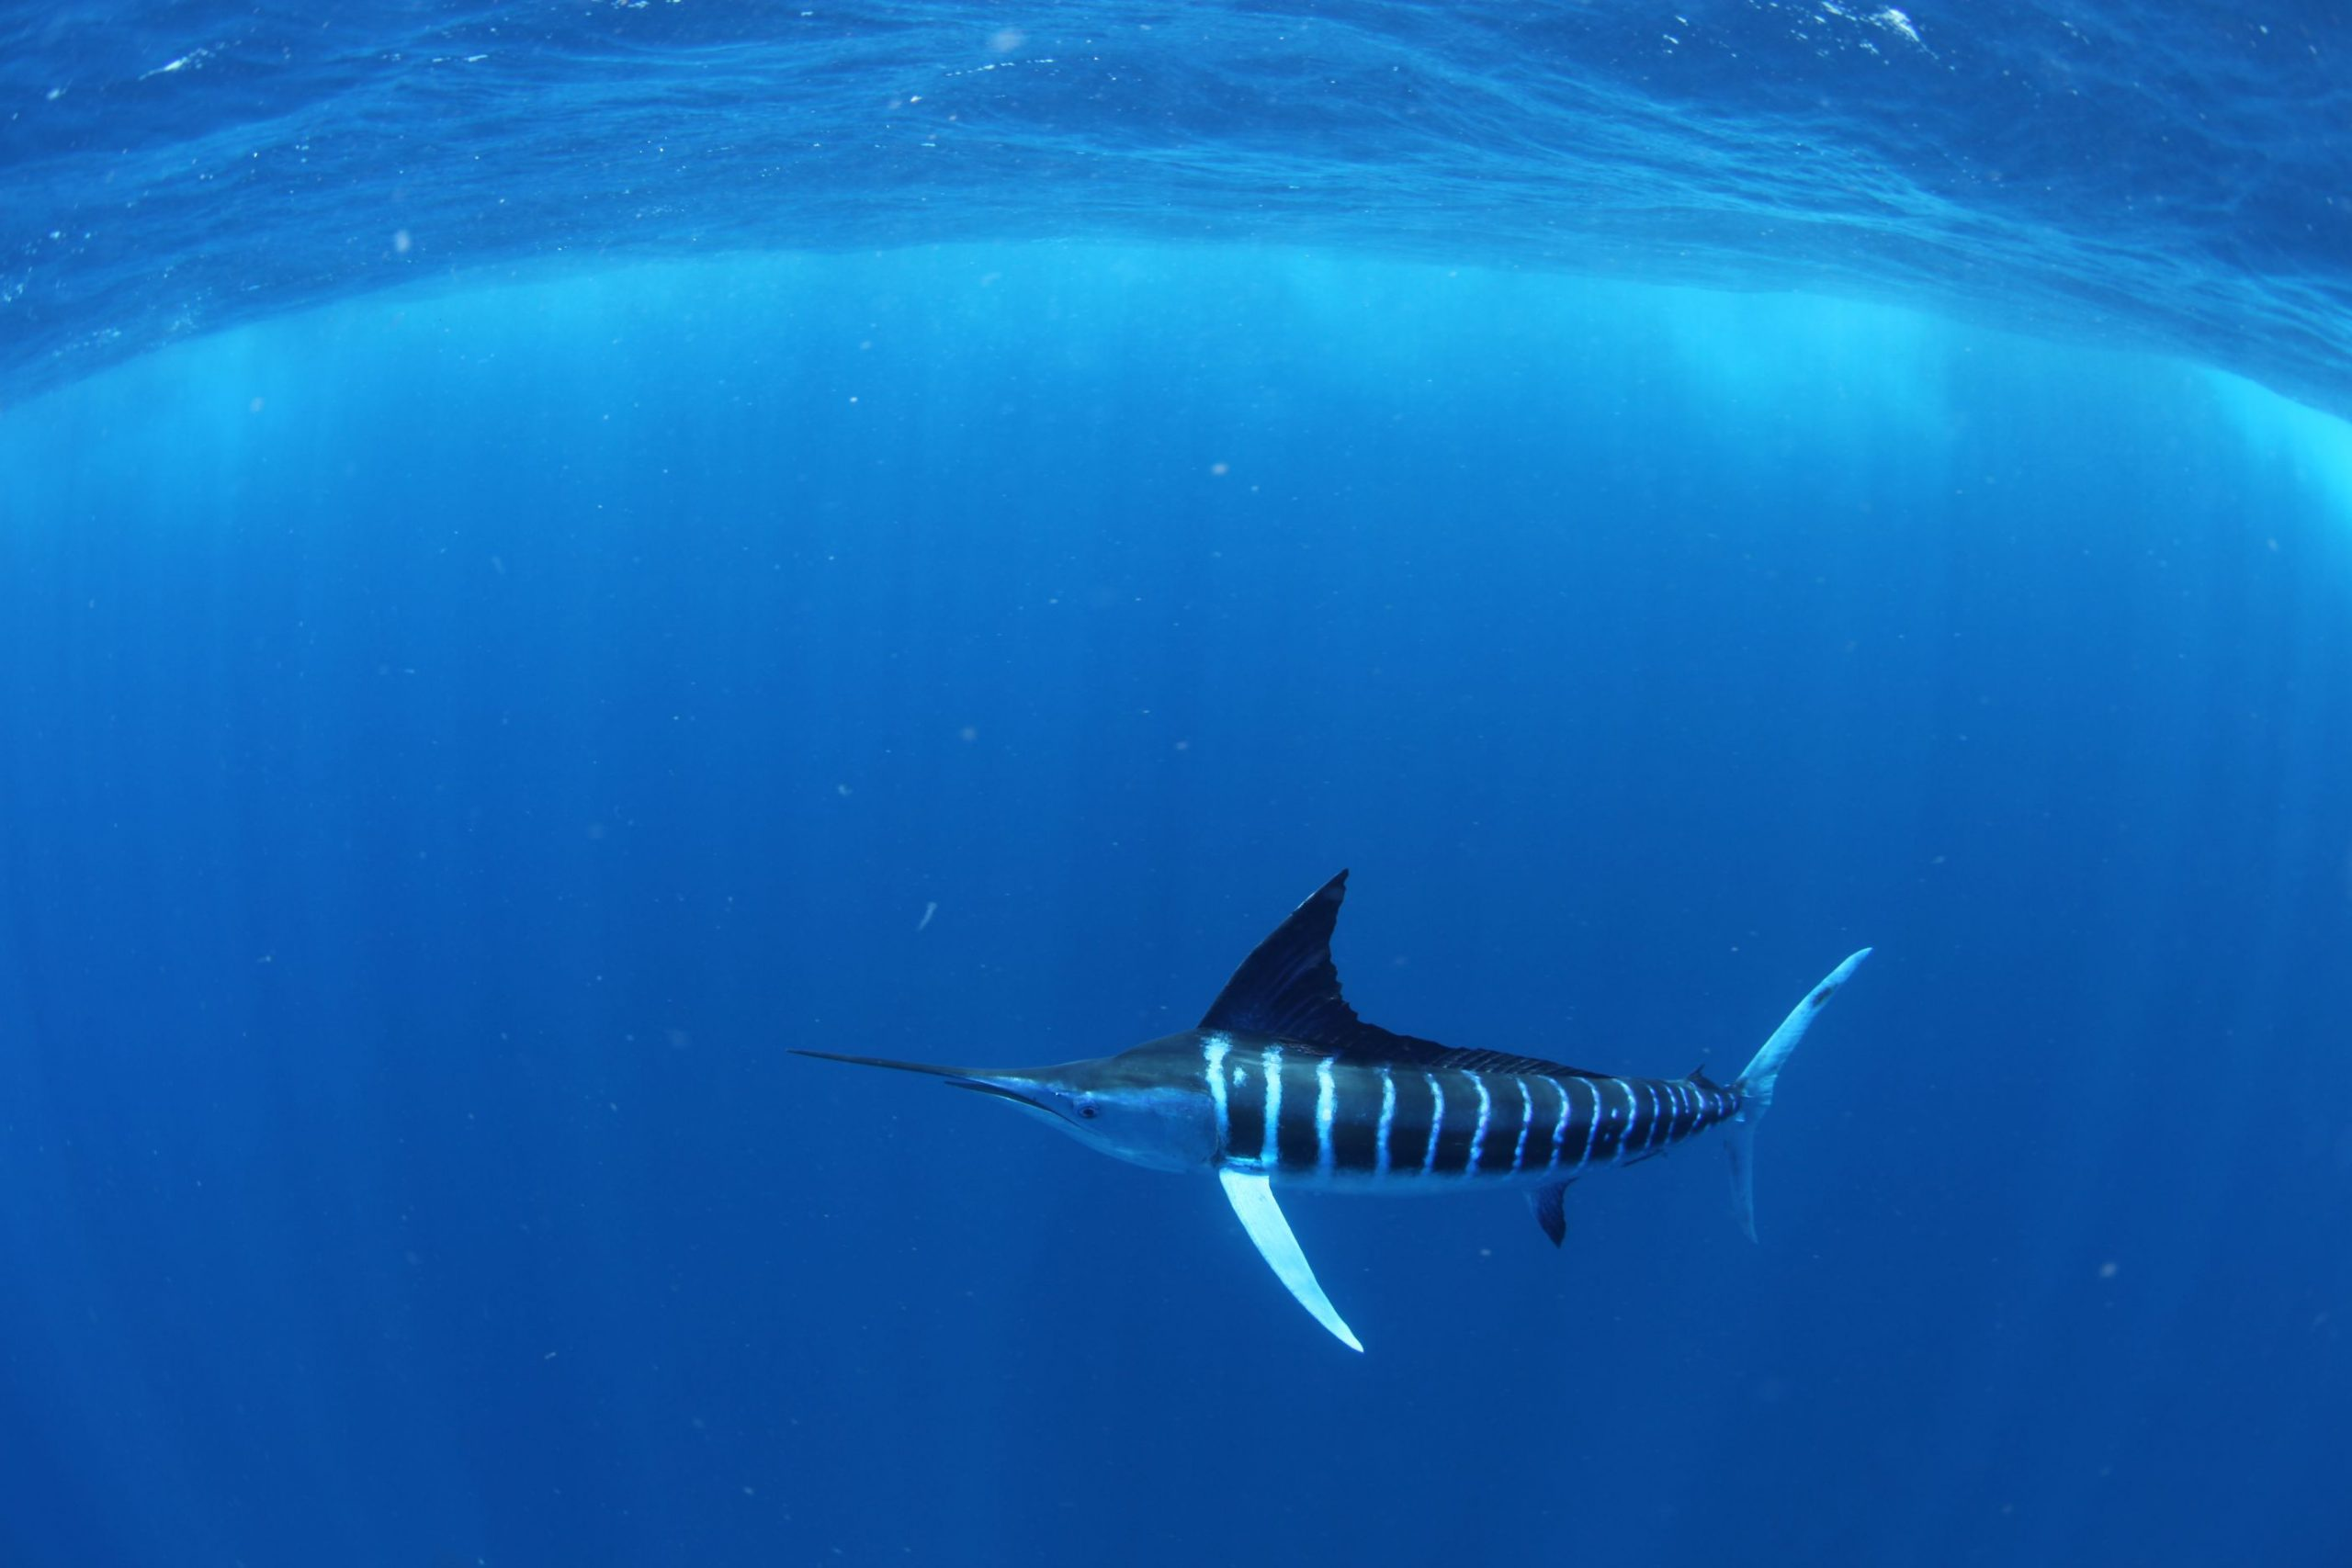 striped-marlin-under-the-water